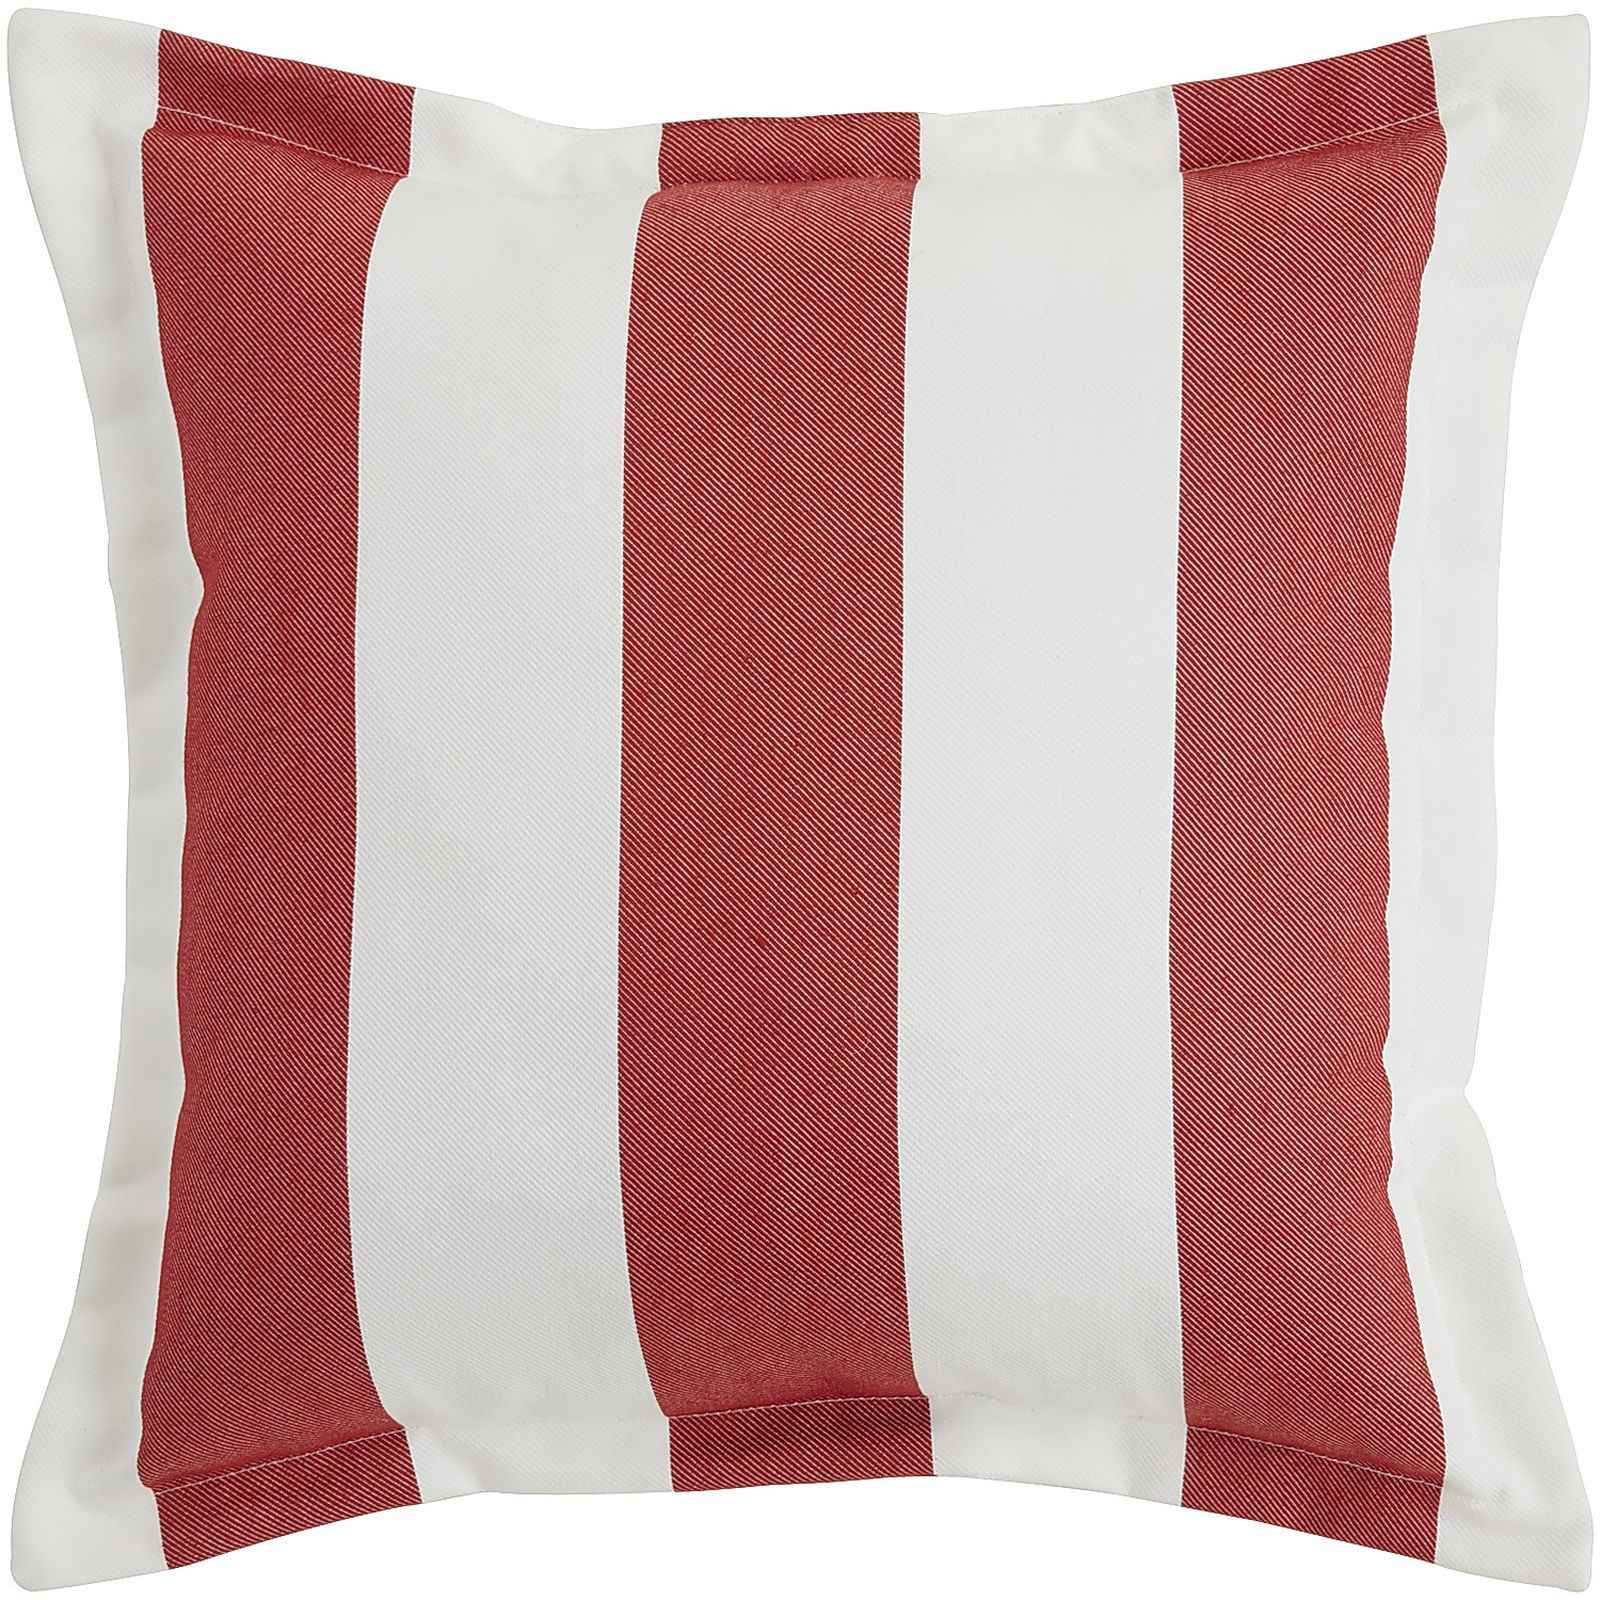 Dover Pillow - Cherry | Pier 1 Imports